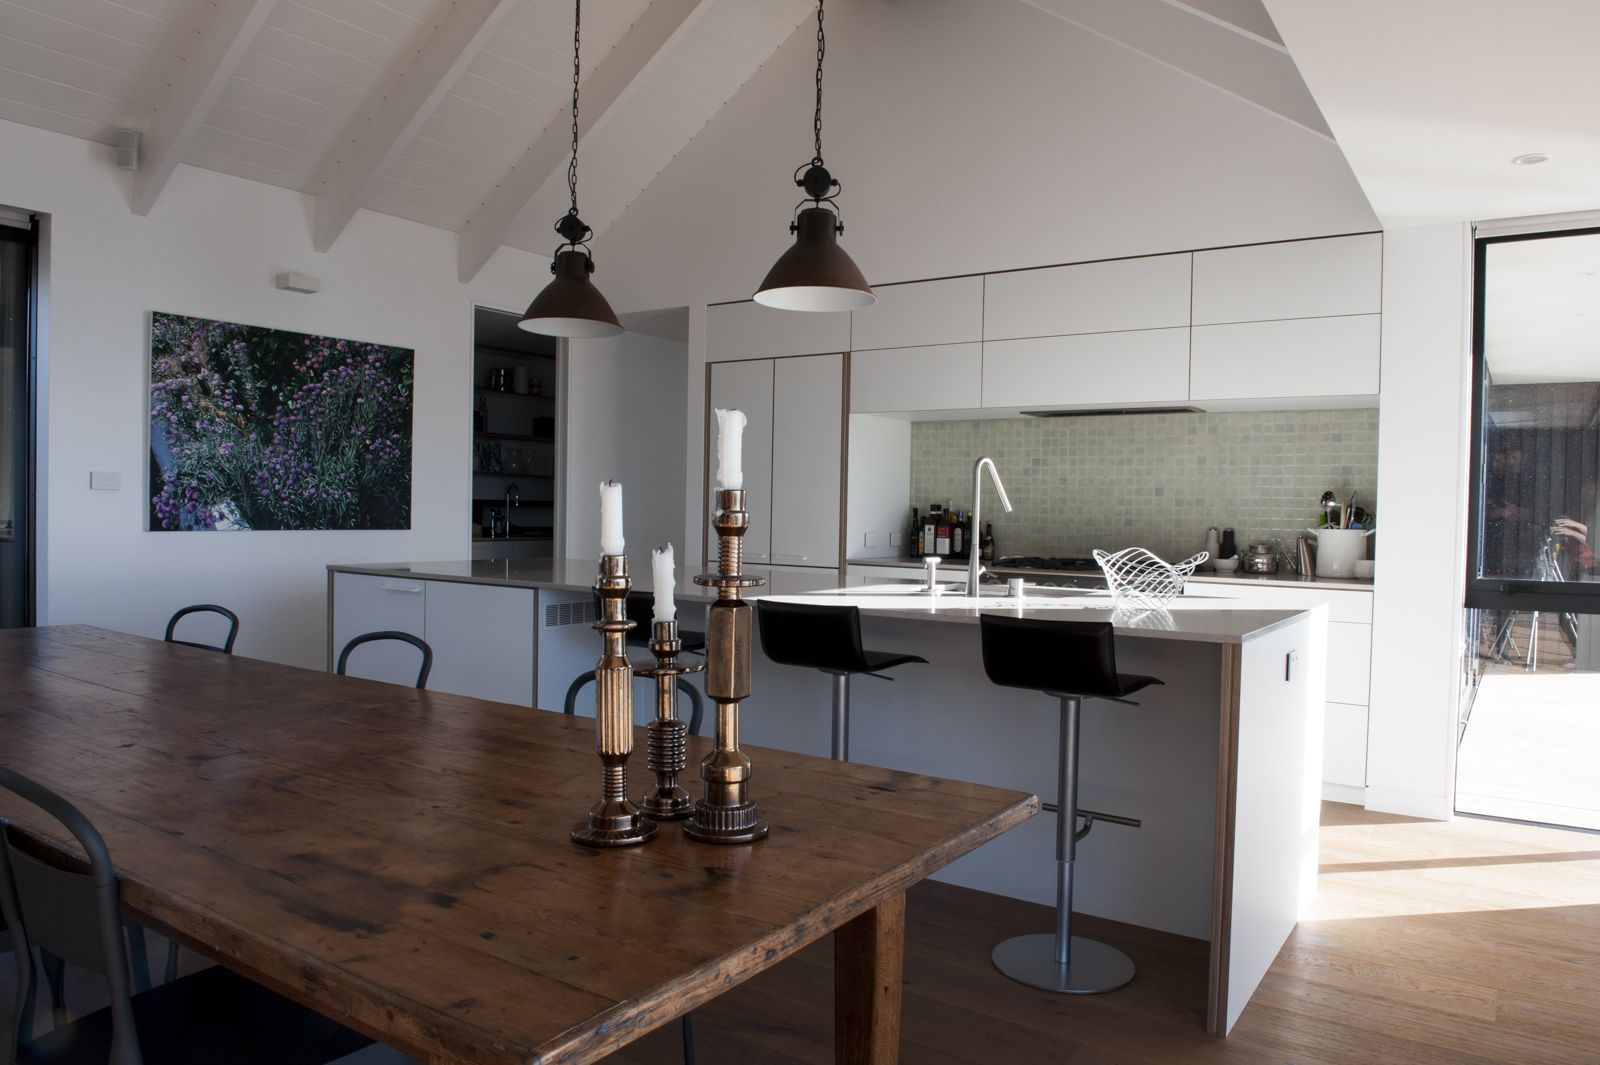 House design northland - House Of The Year Northland Auckland 2017 Kitchen By Shoreditch Furniture Sustainably Sourced Materials Built And Designed To Last